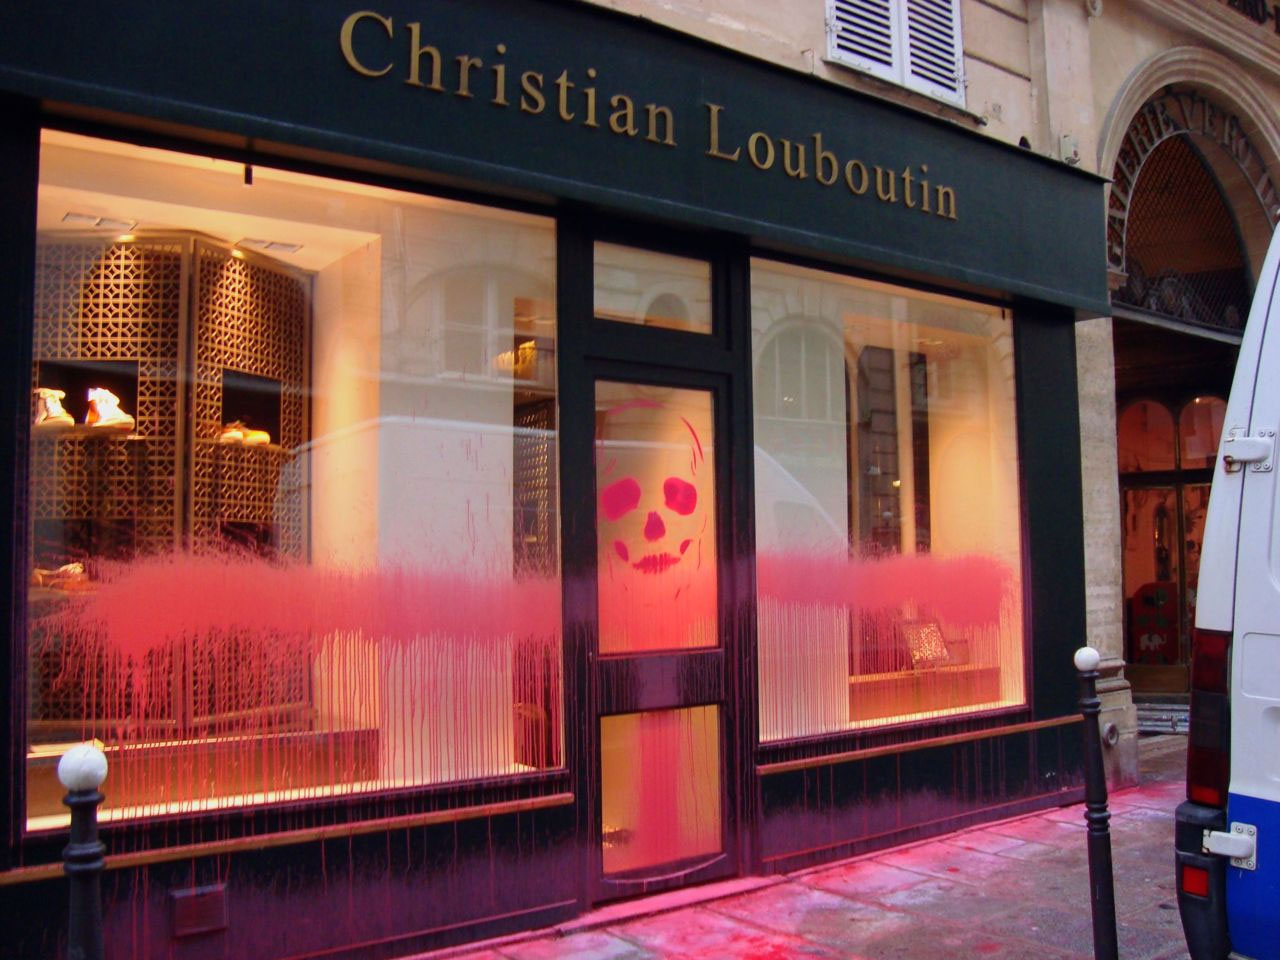 Kidult-x-Christian-Louboutin-Graffiti-Magasin-1